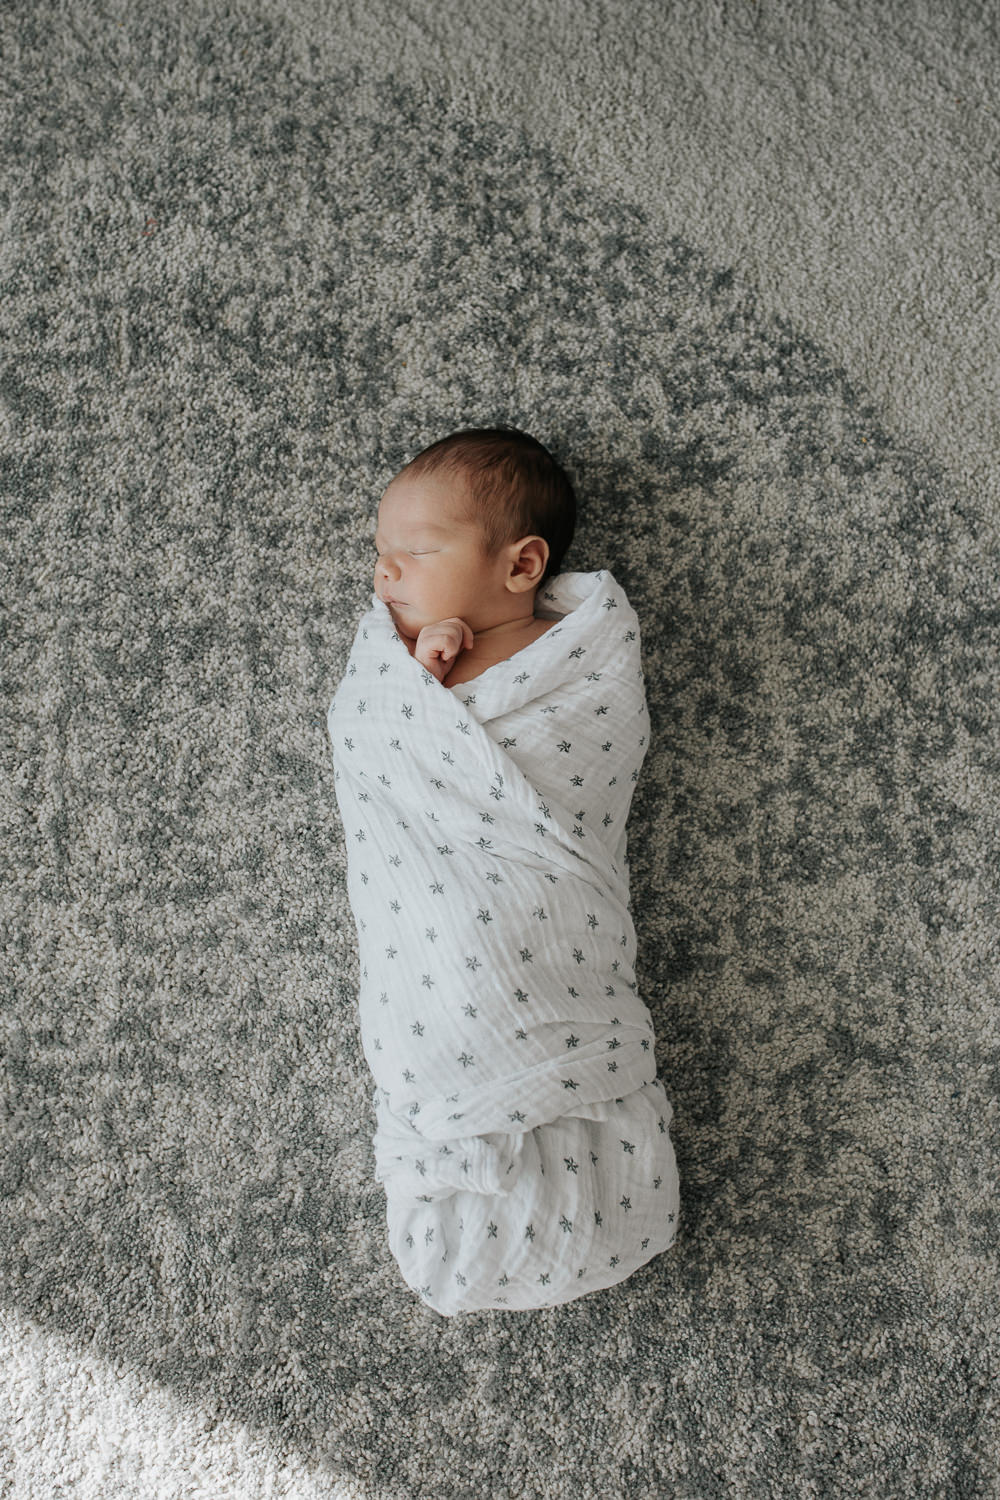 2 week old baby boy with dark hair and olive skin wrapped in swaddle with star on it, sleeping with hand near face -Stouffville Lifestyle Photos